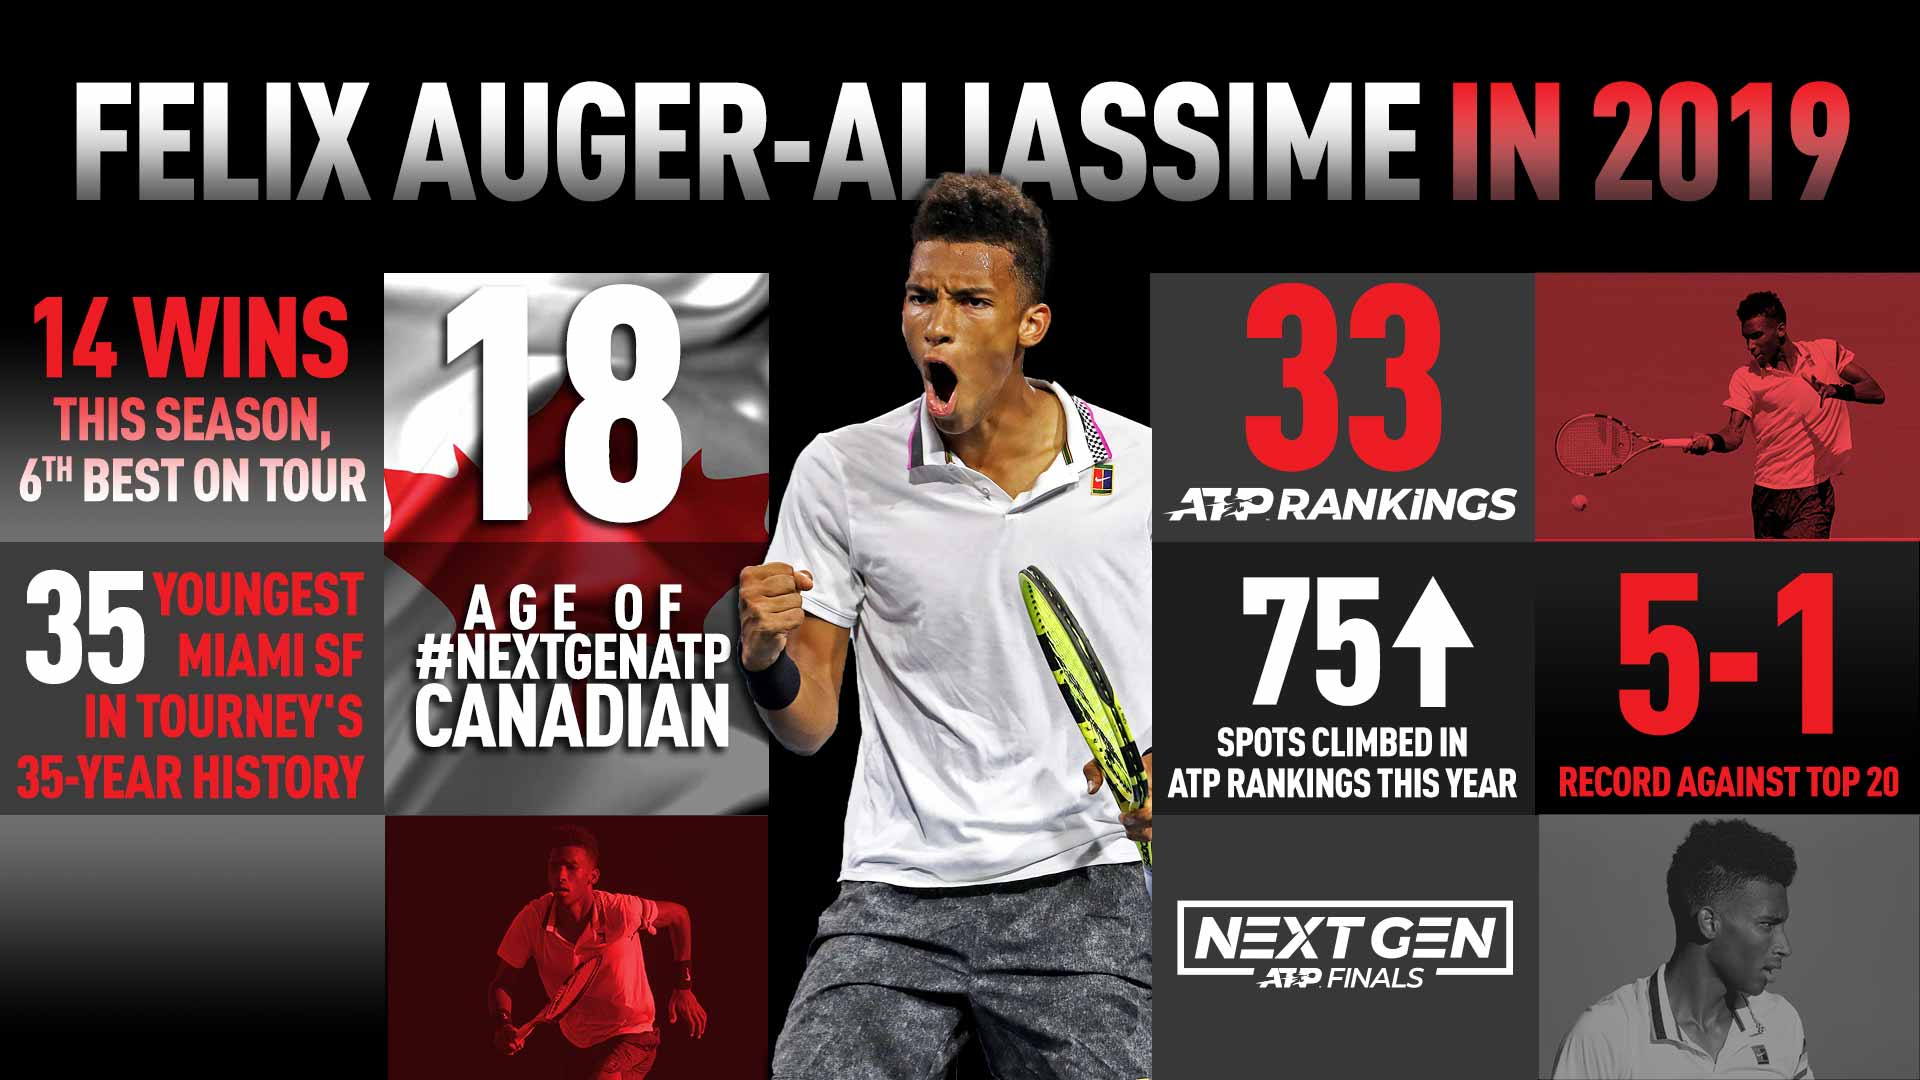 Felix Auger-Aliassime has had a banner 2019 so far on the ATP Tour